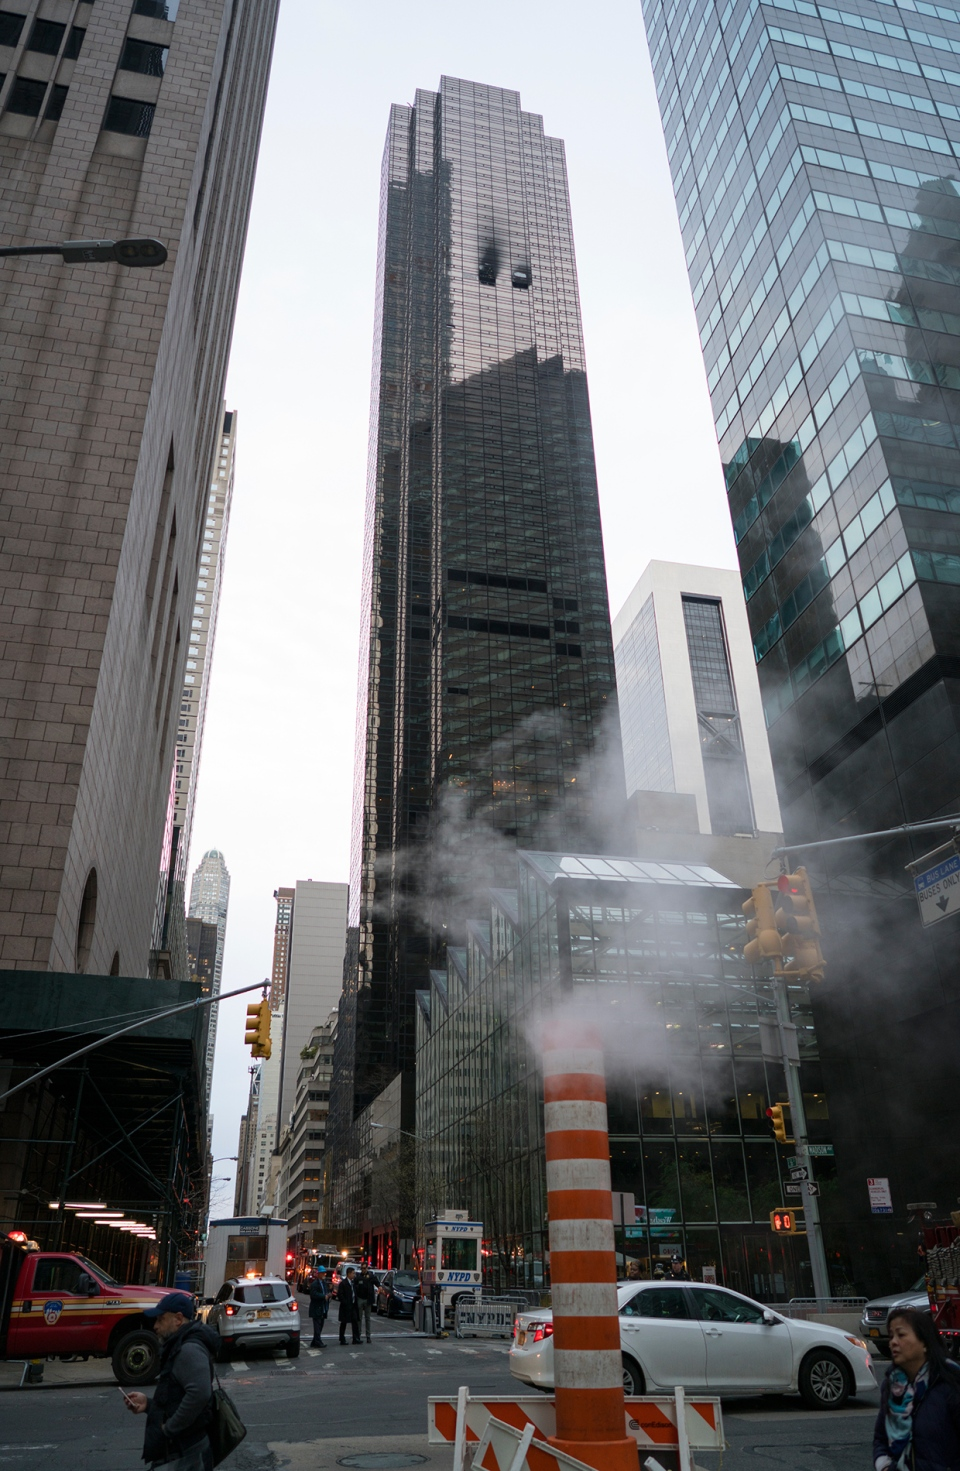 Fire damage is seen on a side of Trump Tower in New York on Saturday, April 7, 2018. (AP / Craig Ruttle)